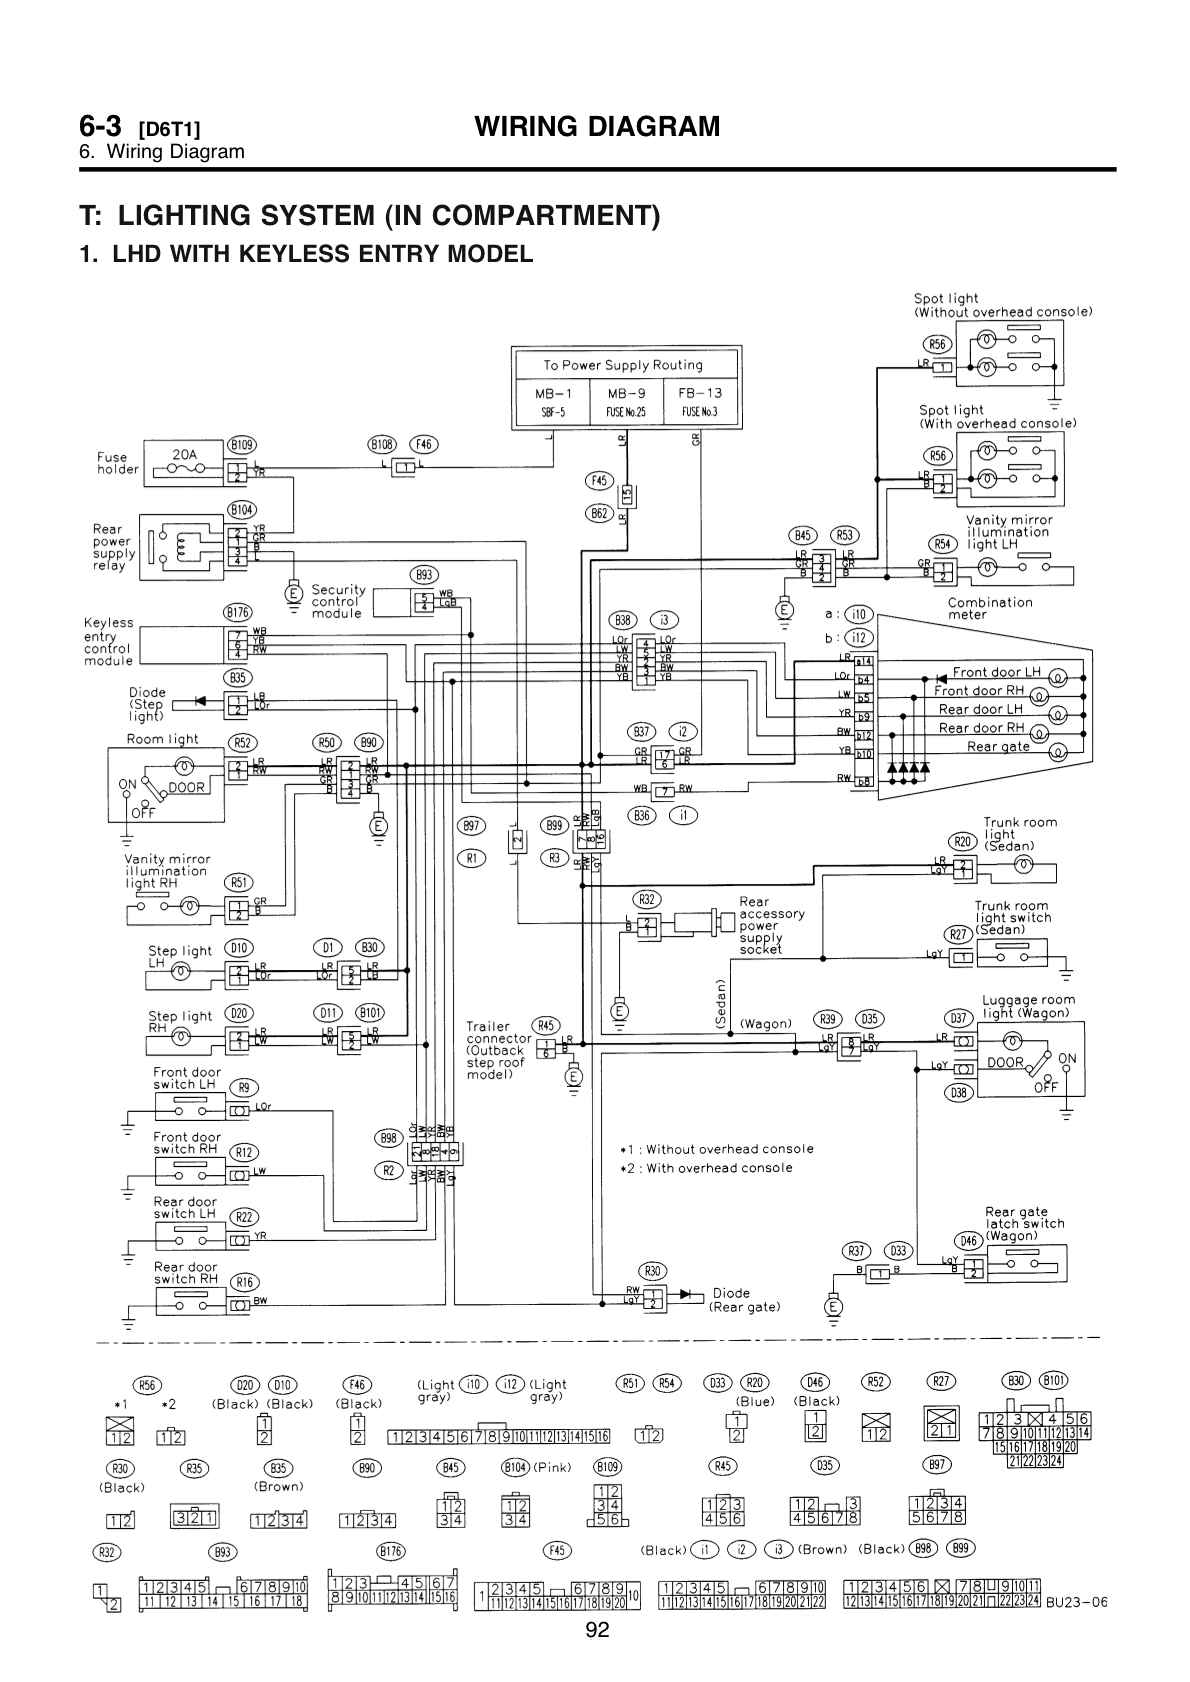 wiring_diagram1 93 subaru legacy wiring diagram 1995 subaru legacy wiring diagram 2000 Subaru Legacy Limited at bakdesigns.co